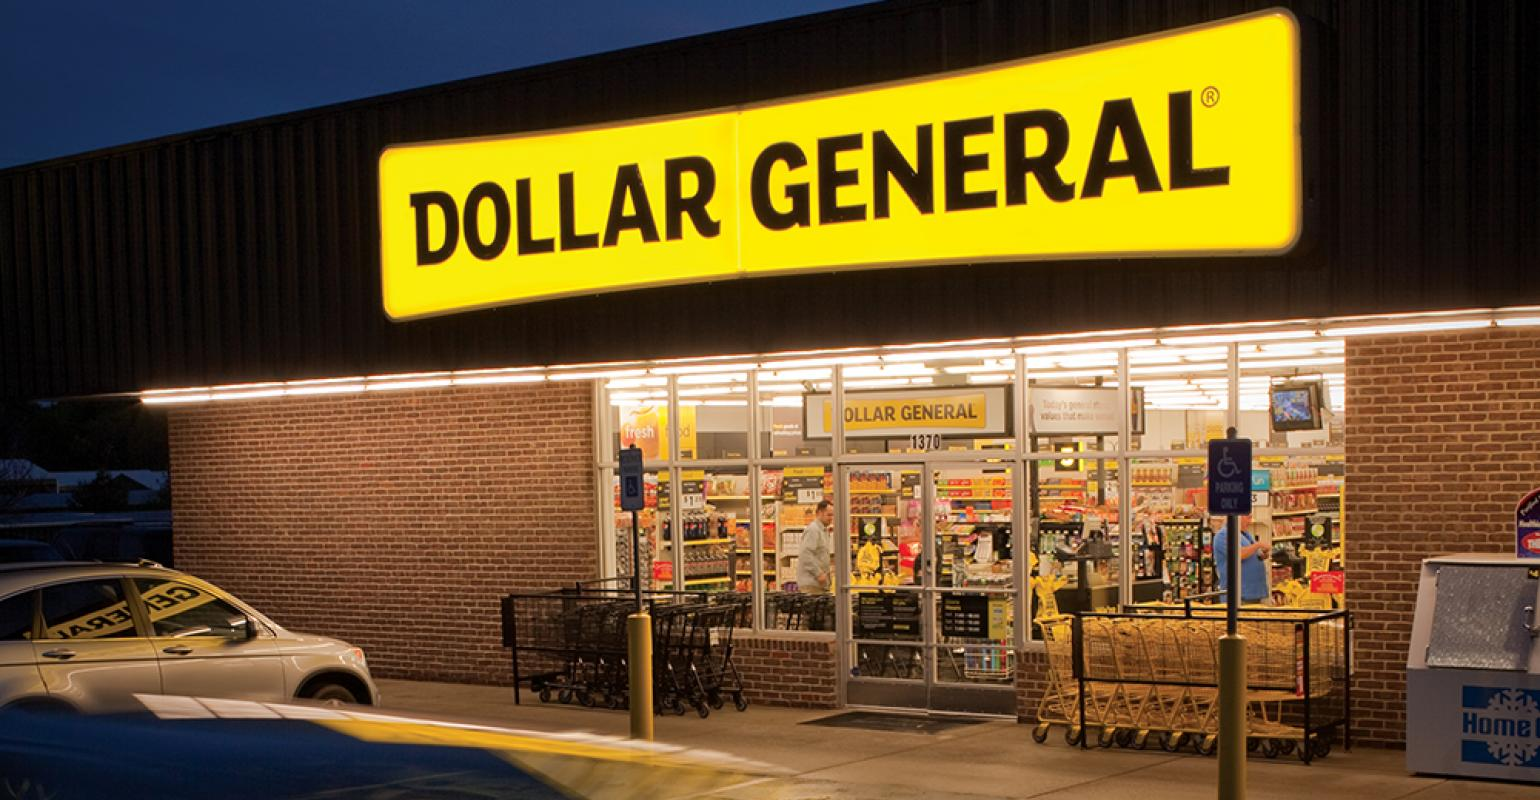 Dollar General Reaches Settlement with the EEOC in Years-Long Background Check Bias Suit